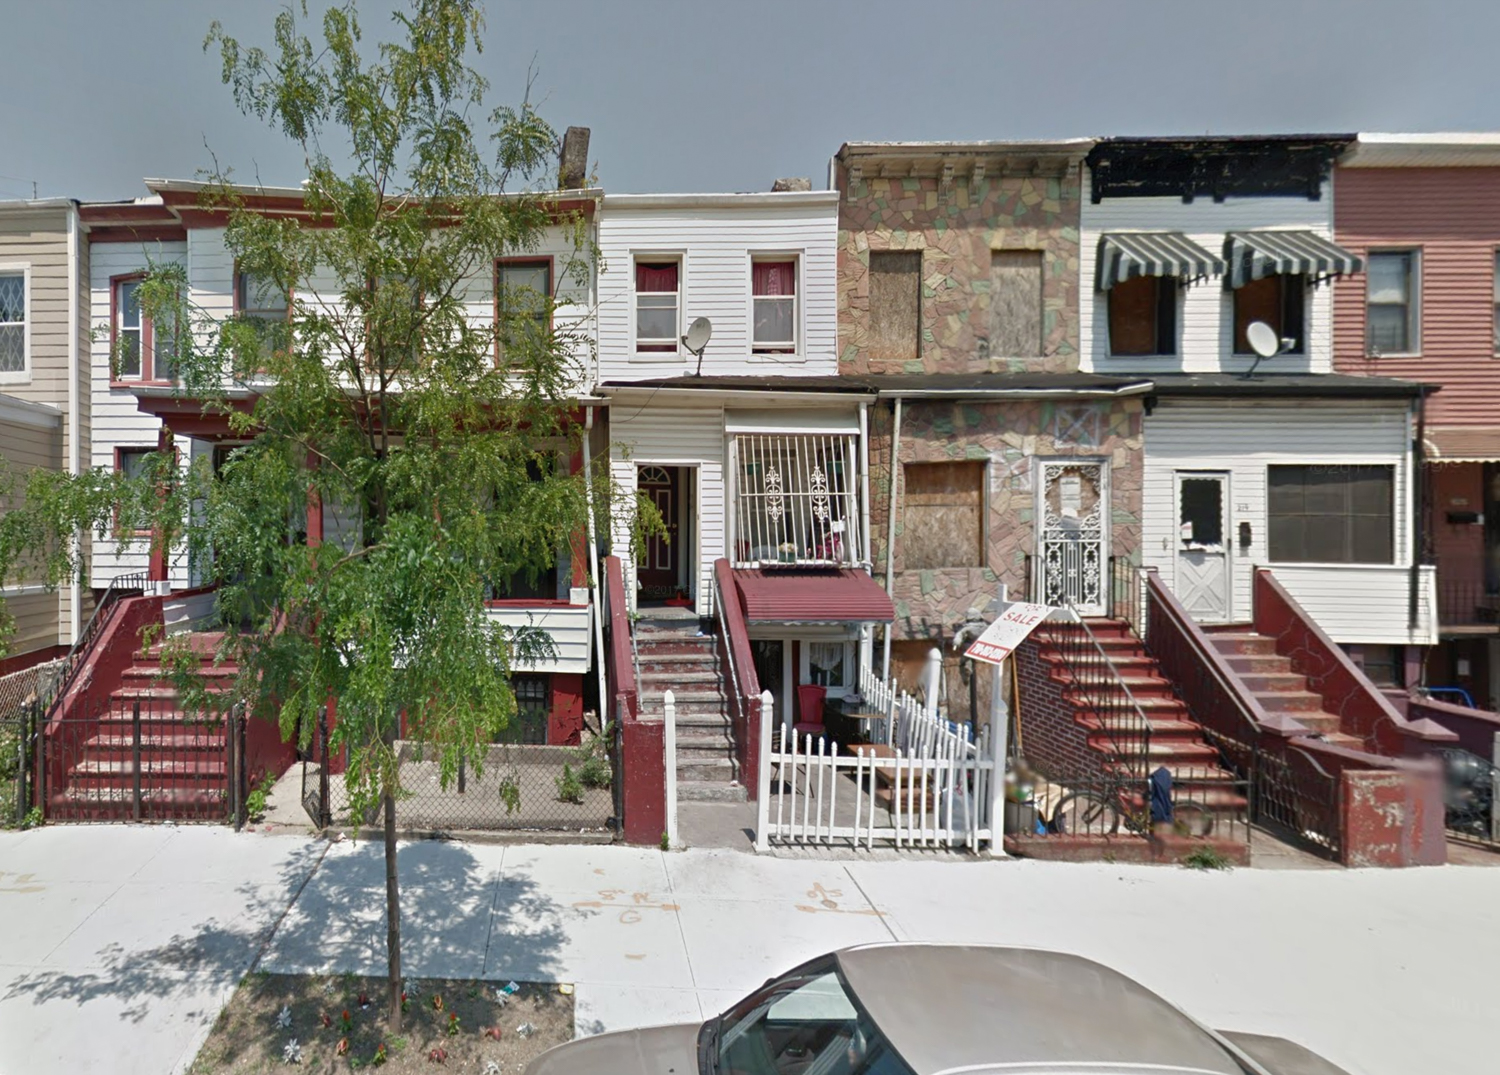 215 Putnam Avenue, via Google Maps